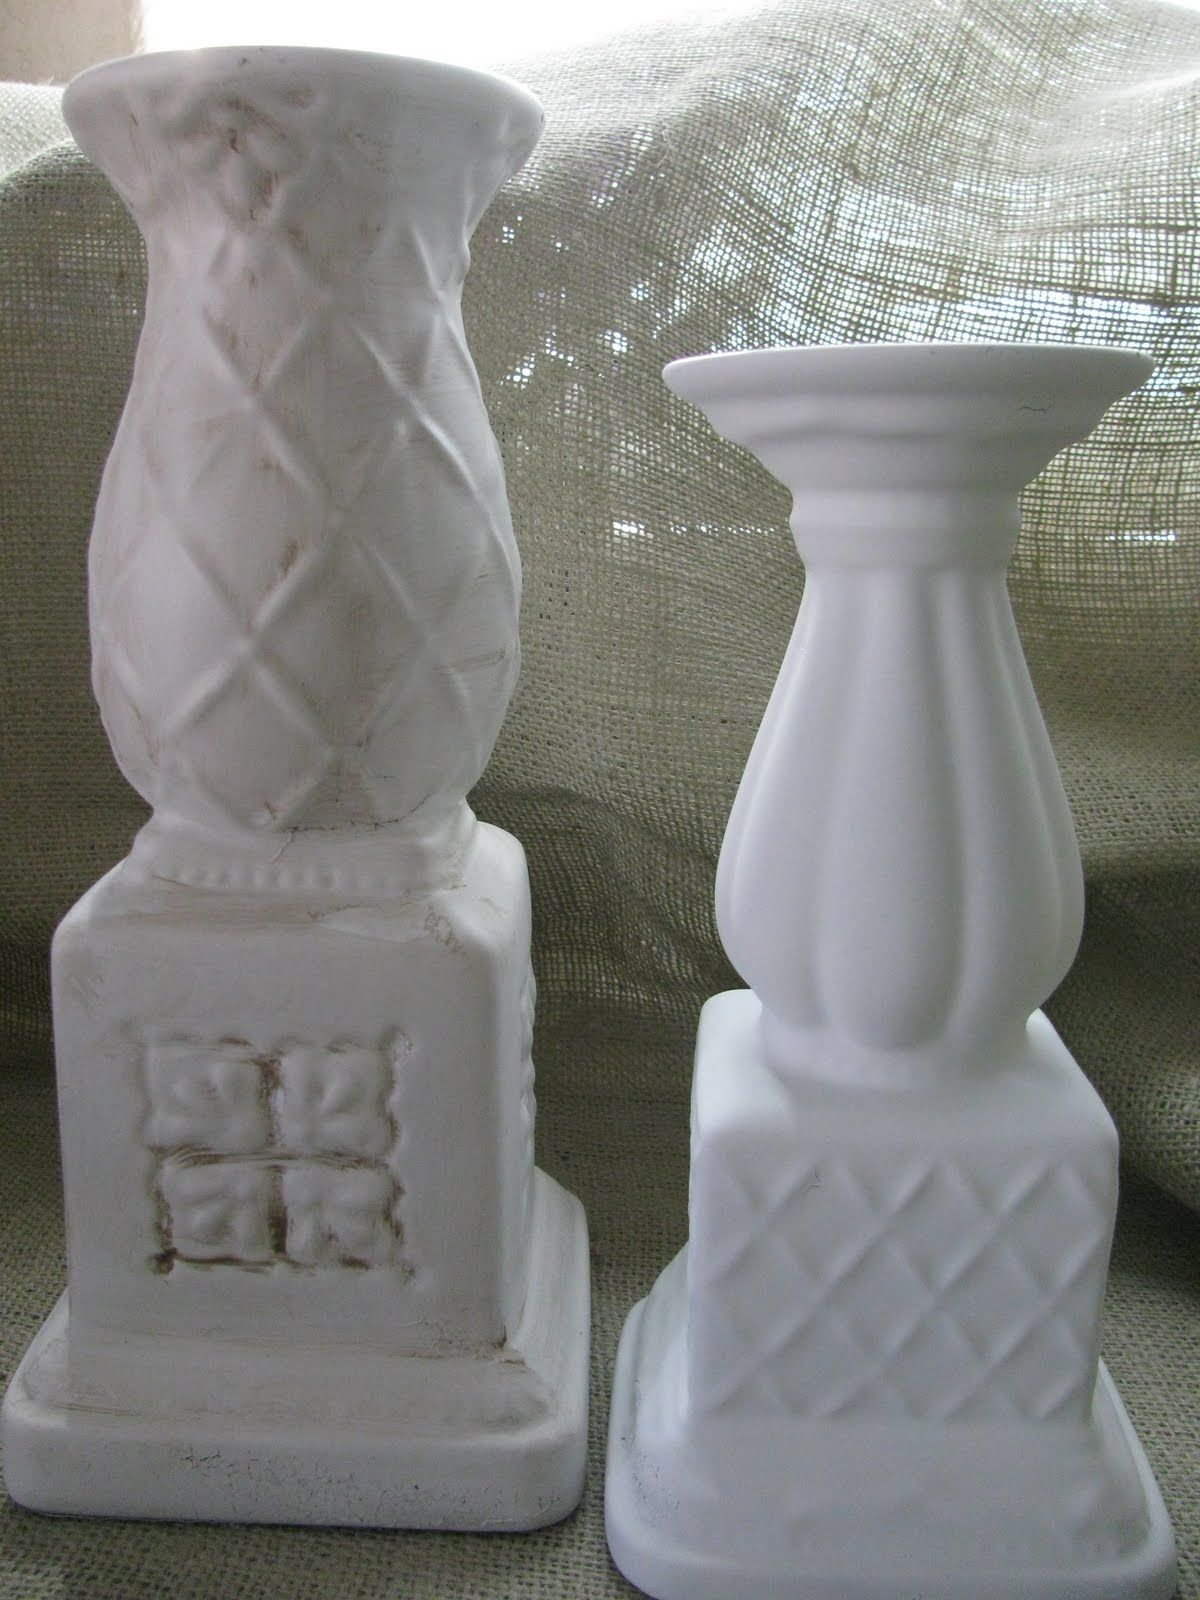 Tutorial On How To Repaint Glazed Ceramic Items Great Way